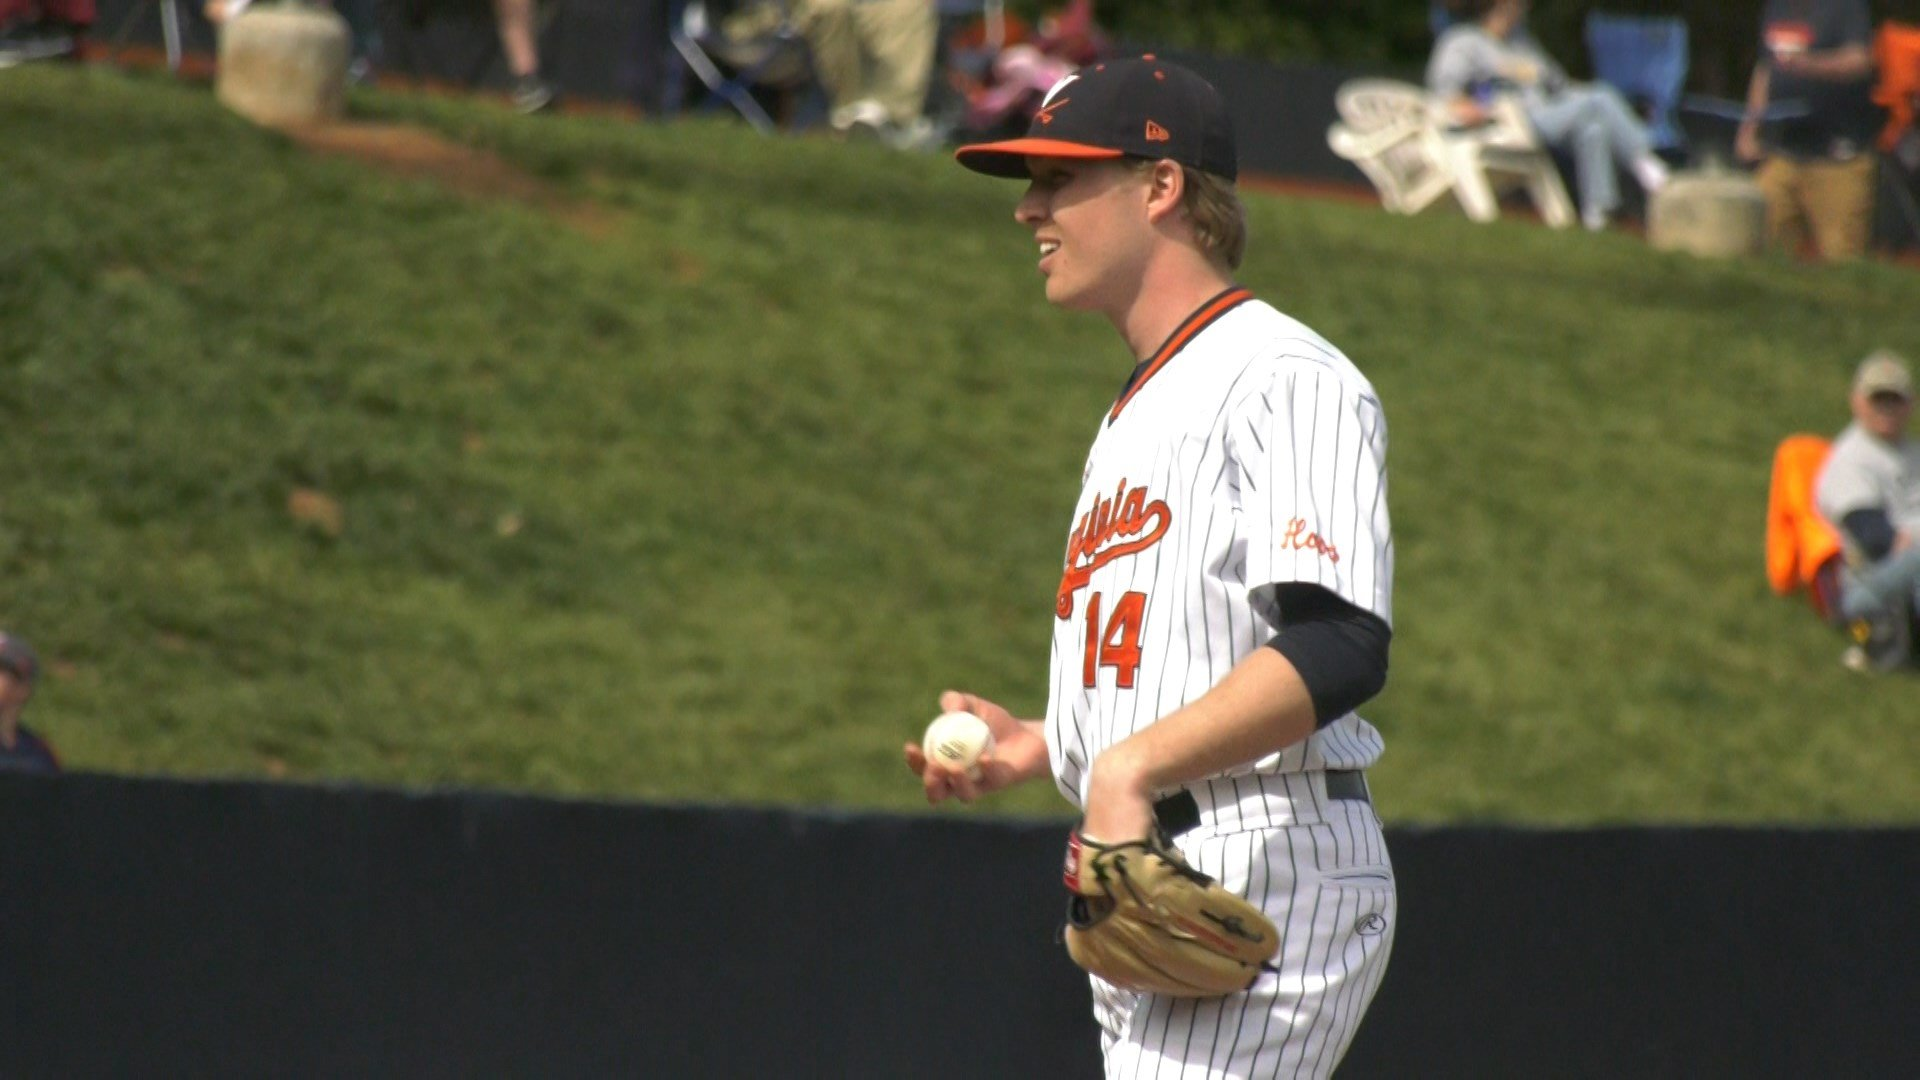 UVA senior pitcher Derek Casey pitched his first complete game in a 9-0 win over Virginia Tech on Friday